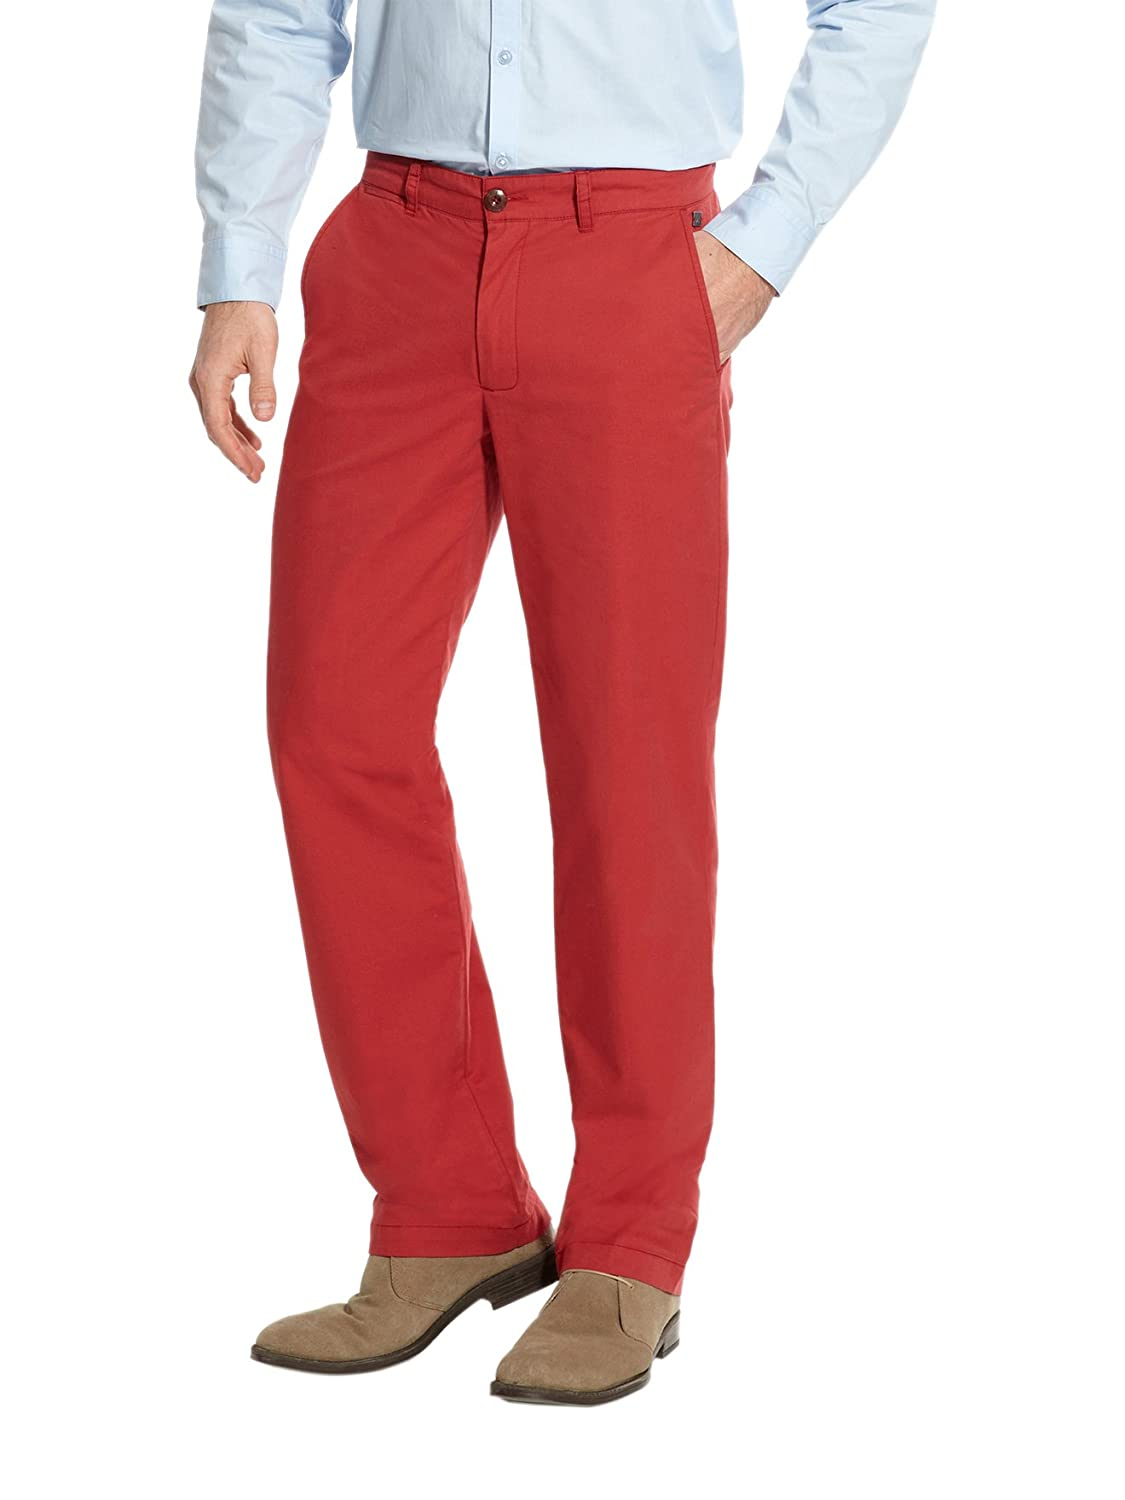 Balsamik - Trousers, Short Length - men - Size : 40 - Colour : Red medium solid